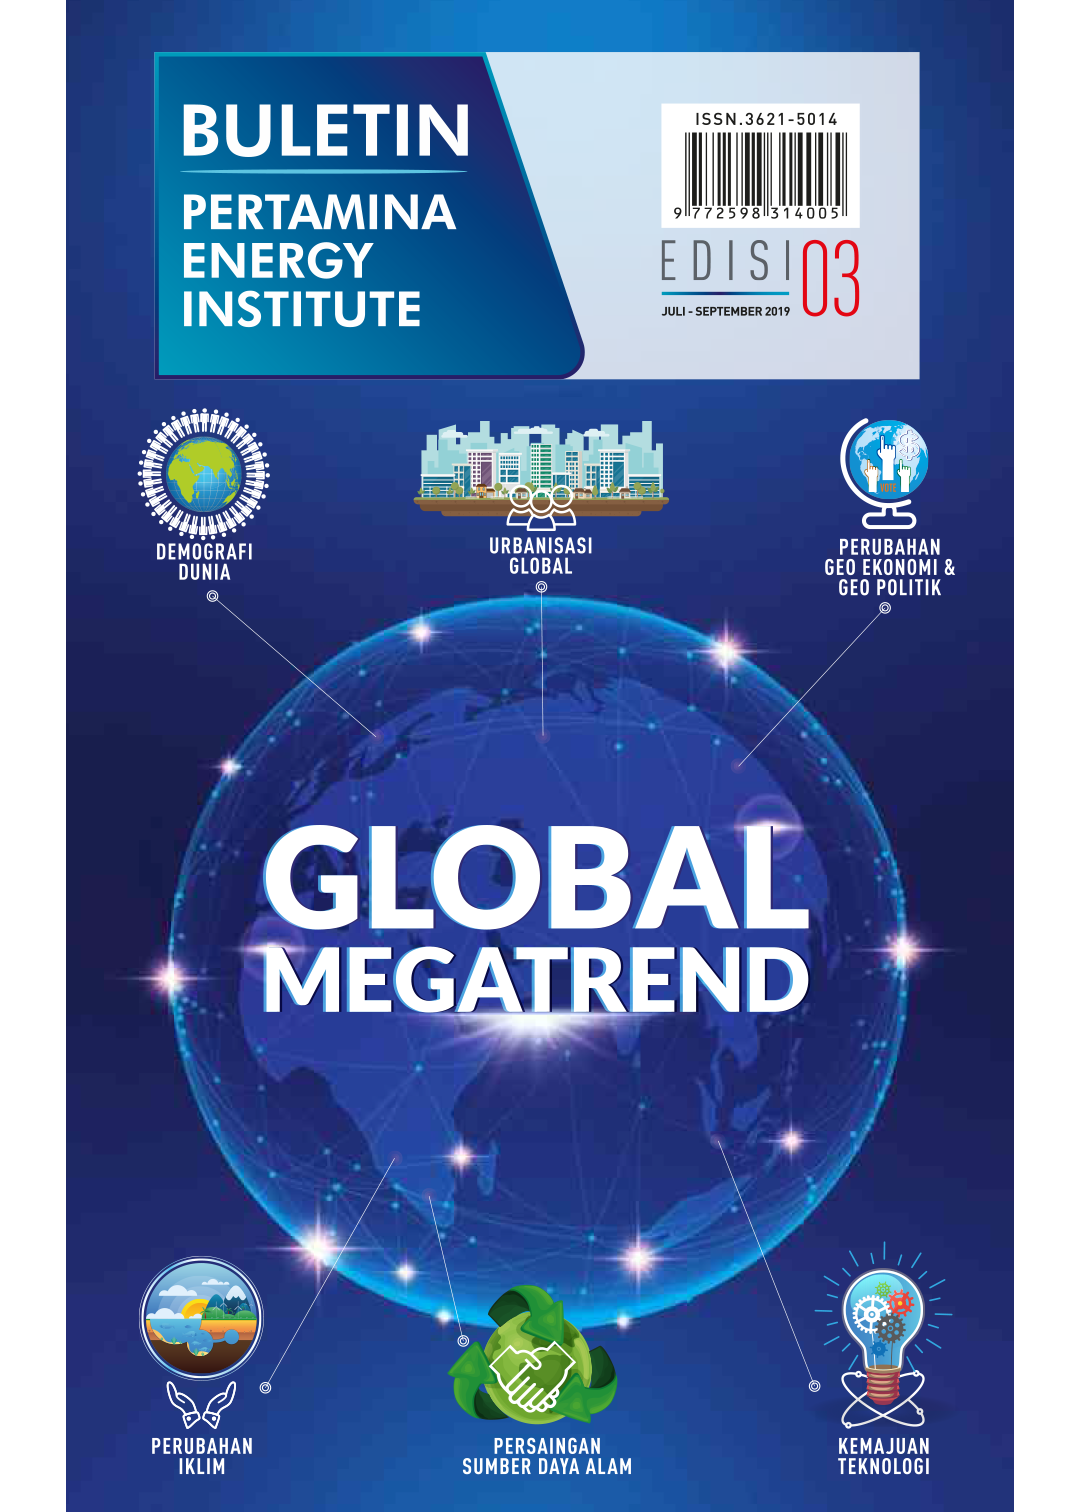 Pertamina Energy Institute - Edisi 03 (Juli - September 2019)